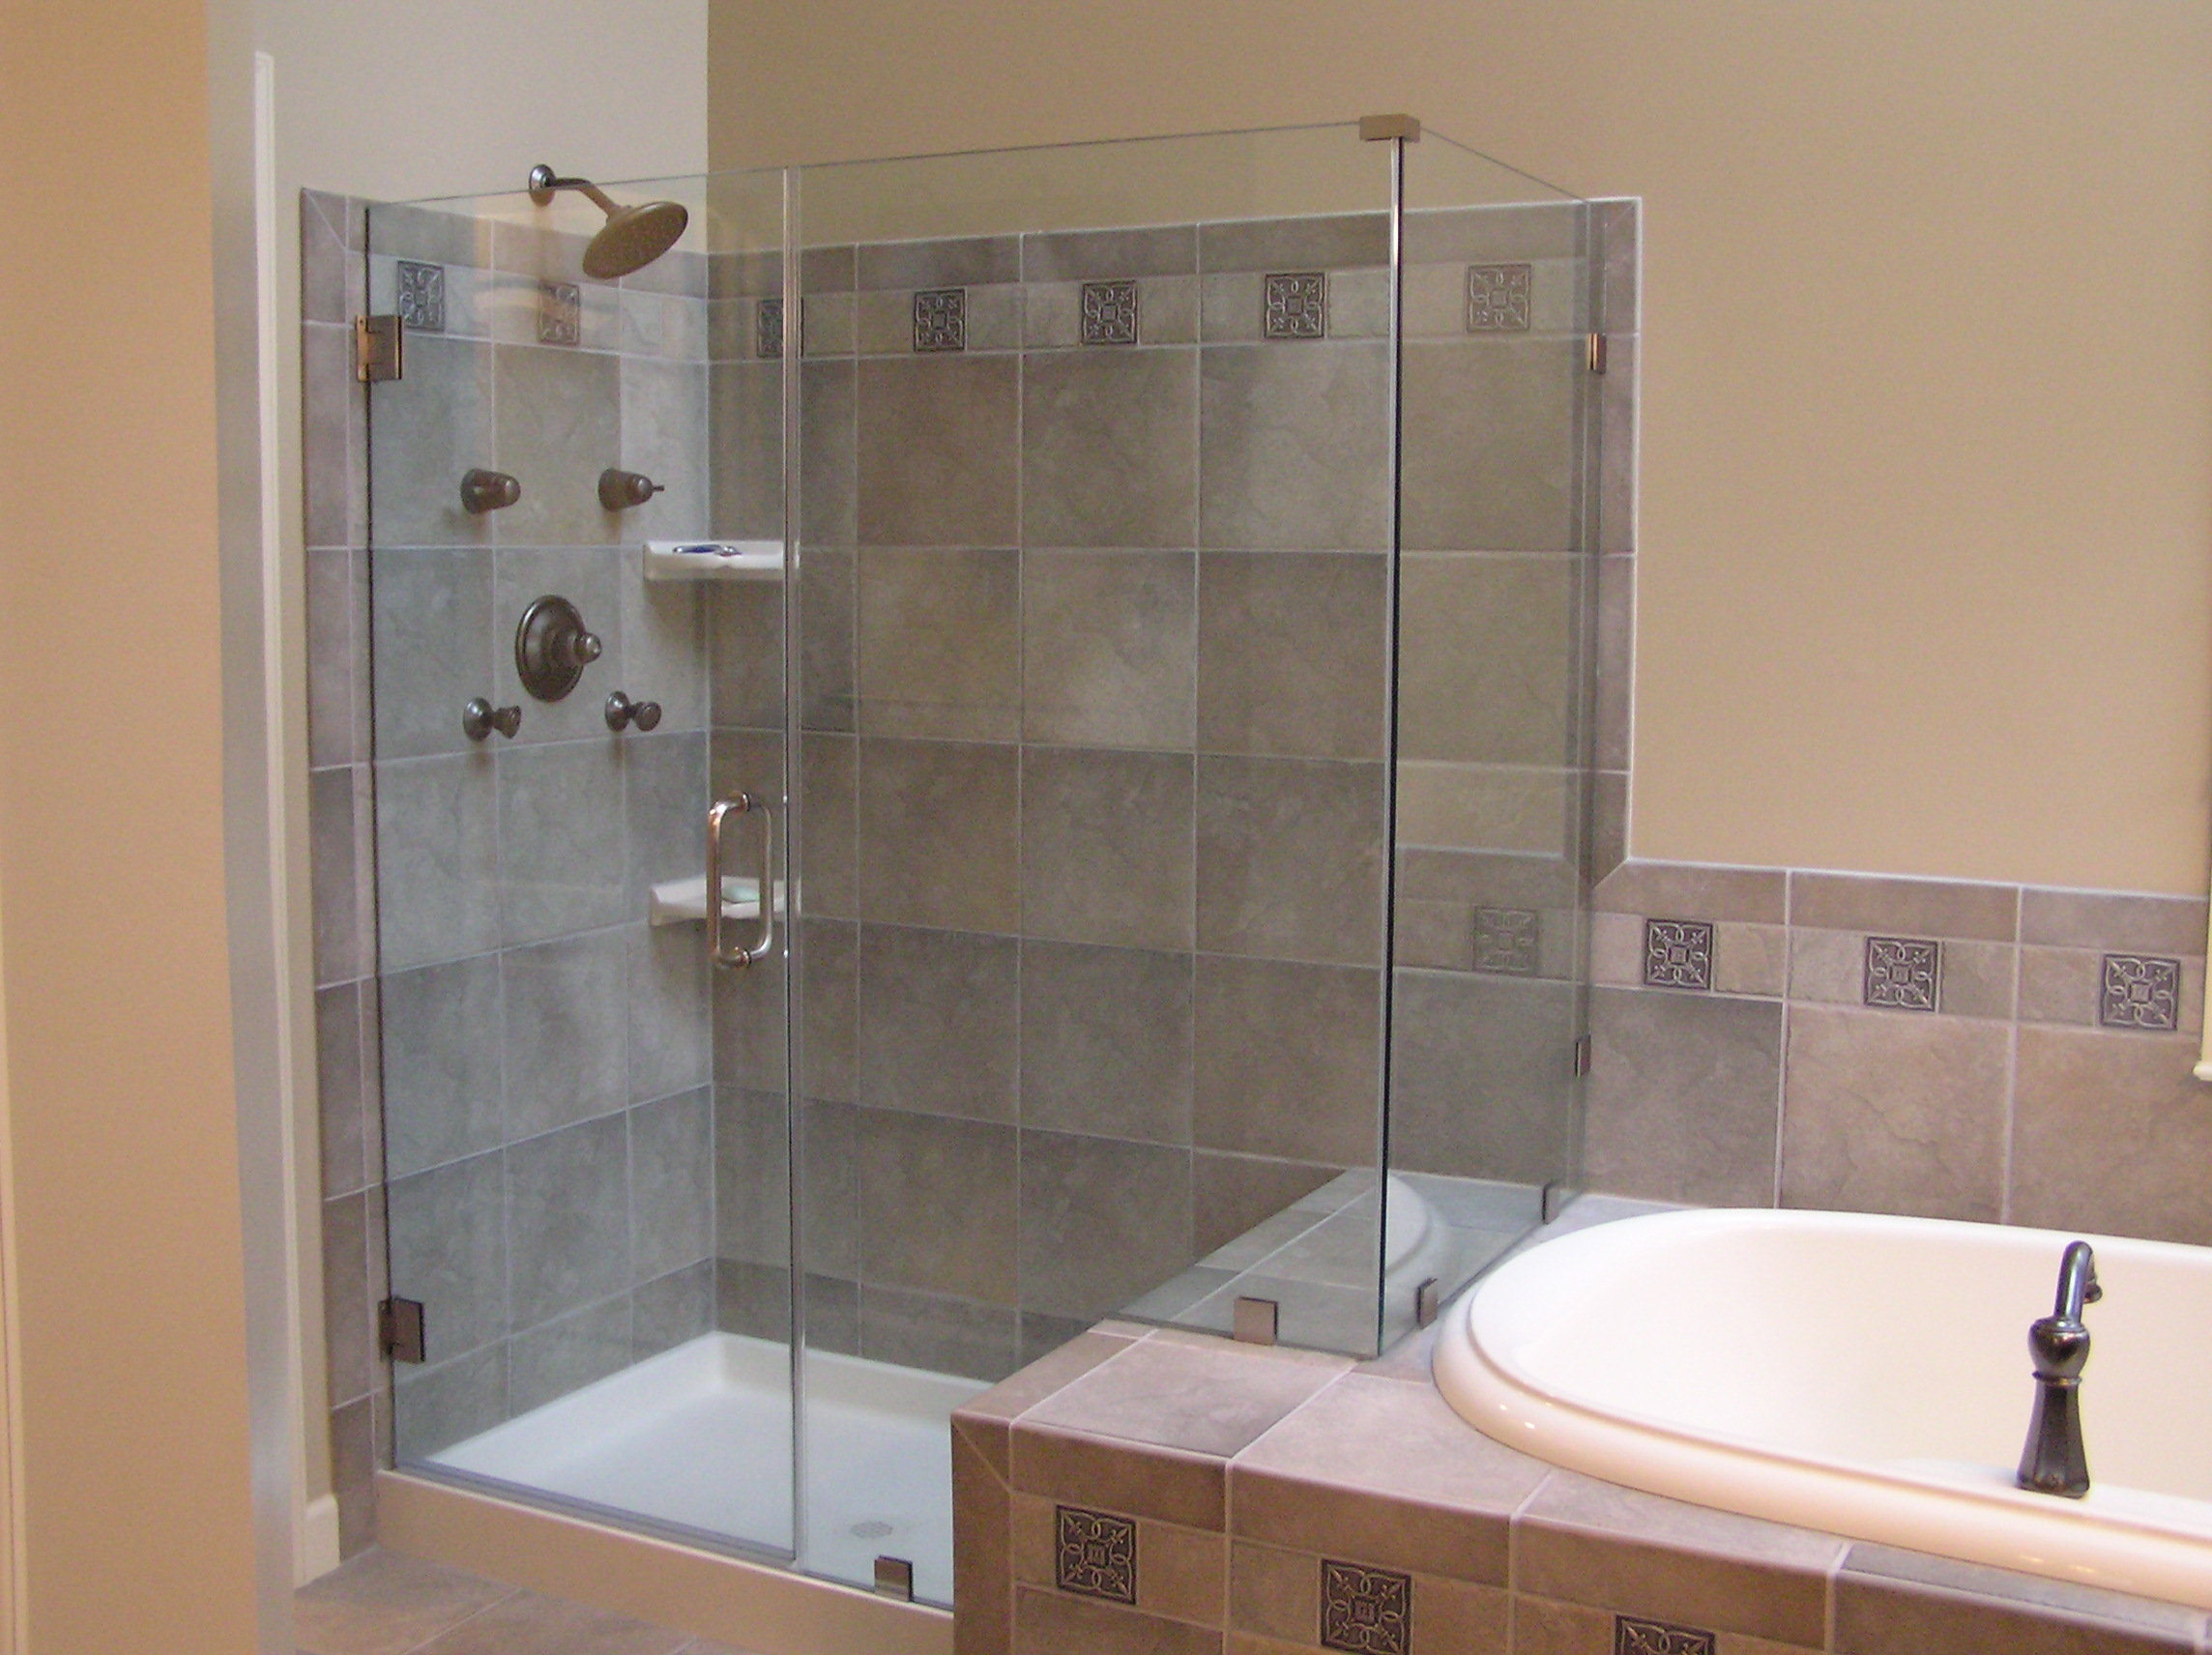 Small Bathroom Designs Cost small bathroom remodel cost - large and beautiful photos. photo to